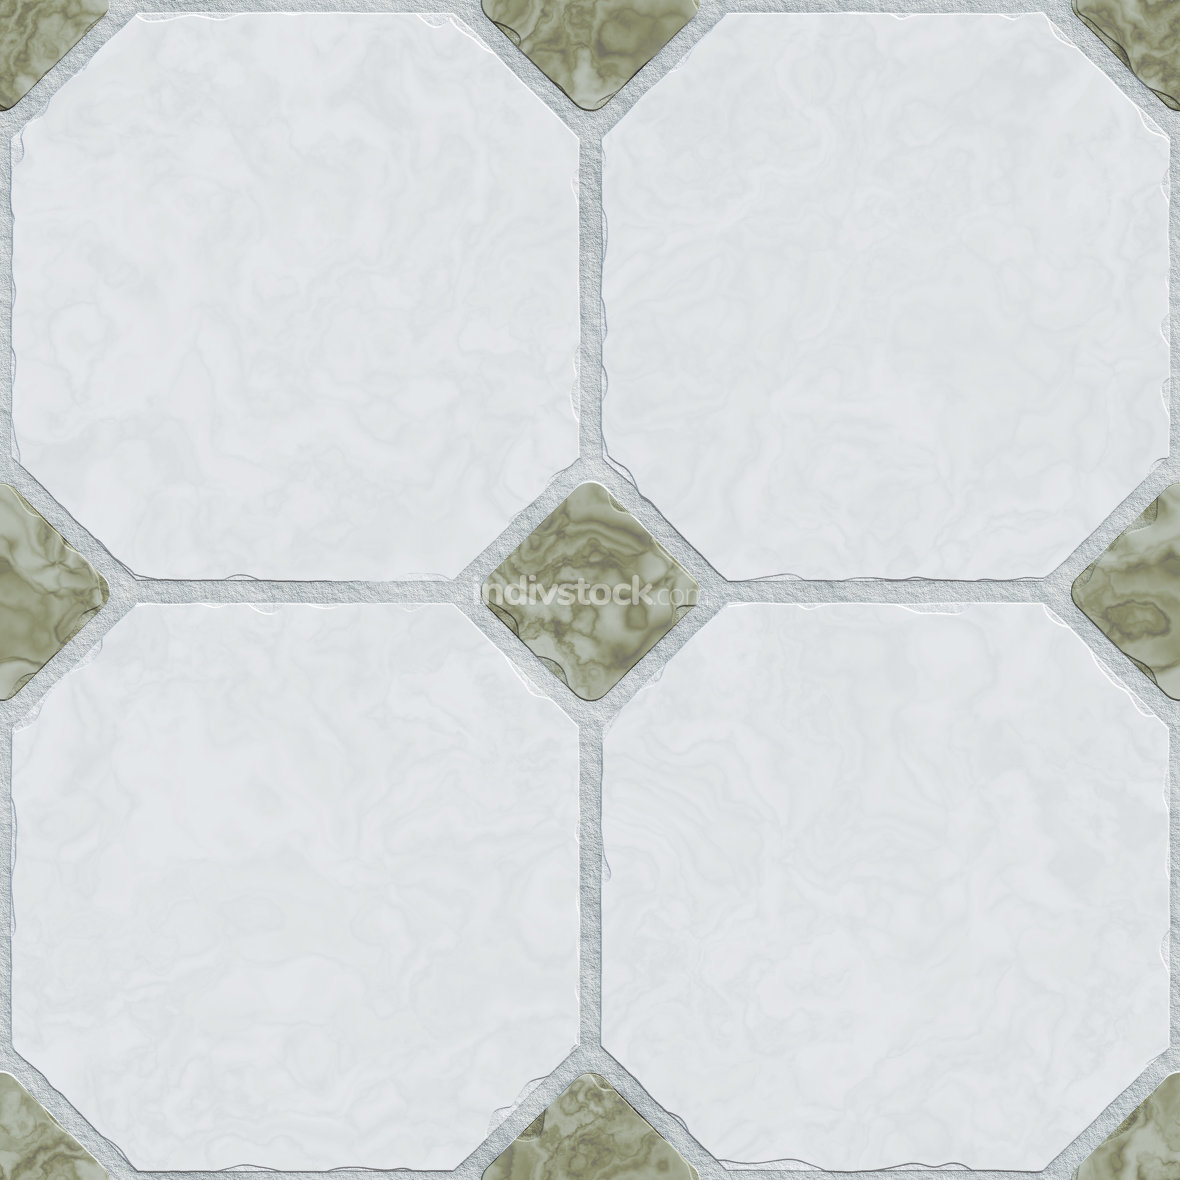 2d illustration typical tiles background seamless